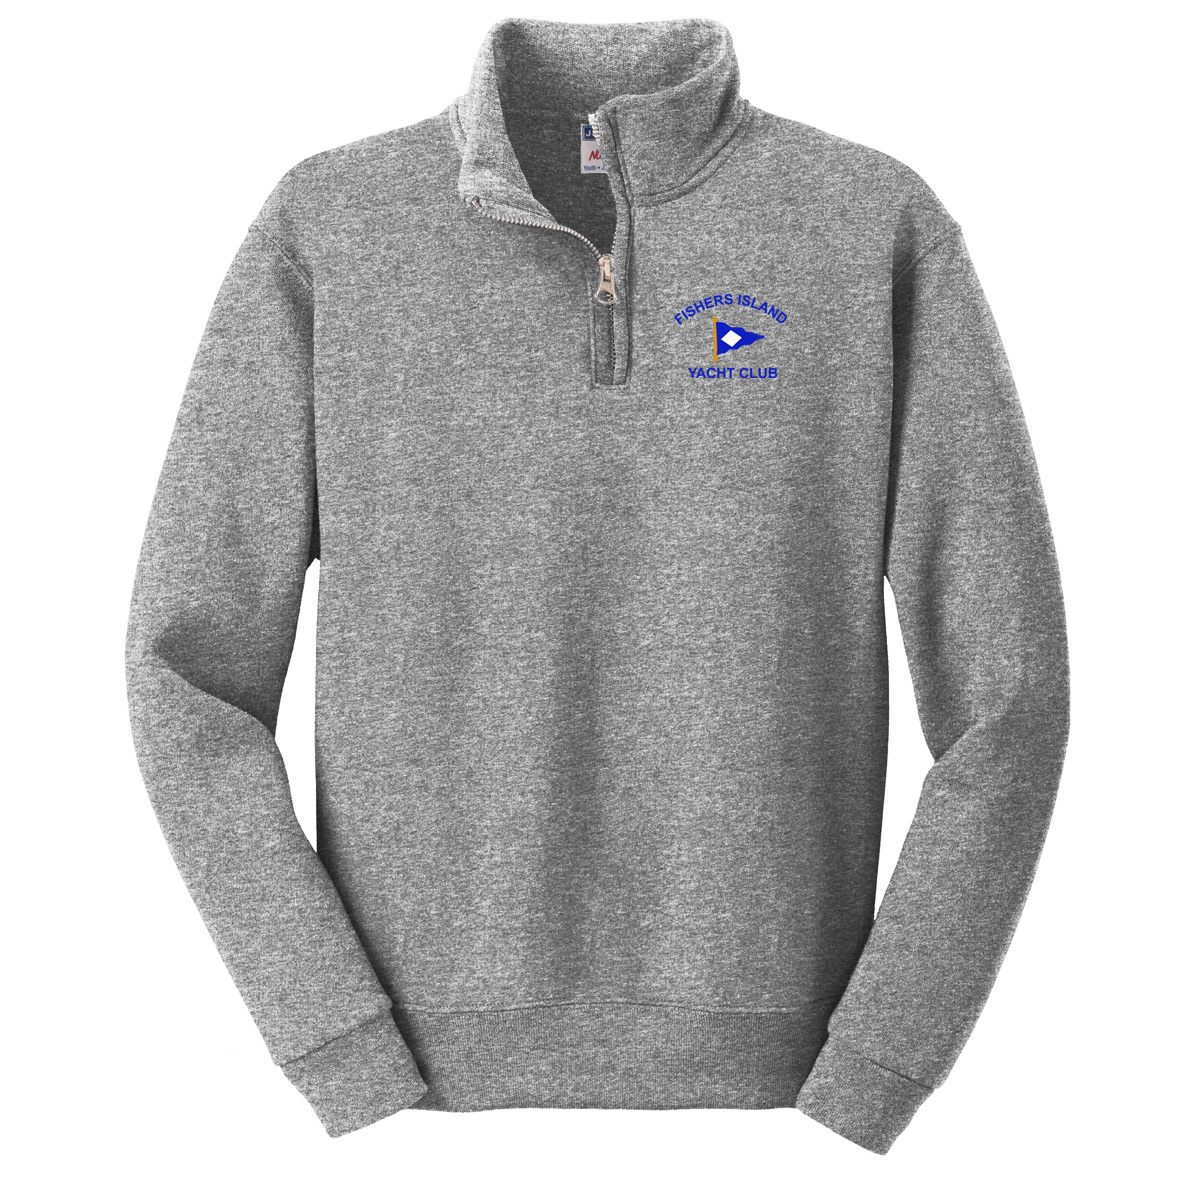 FIYC -  YOUTH 1/4 ZIP SWEATSHIRT